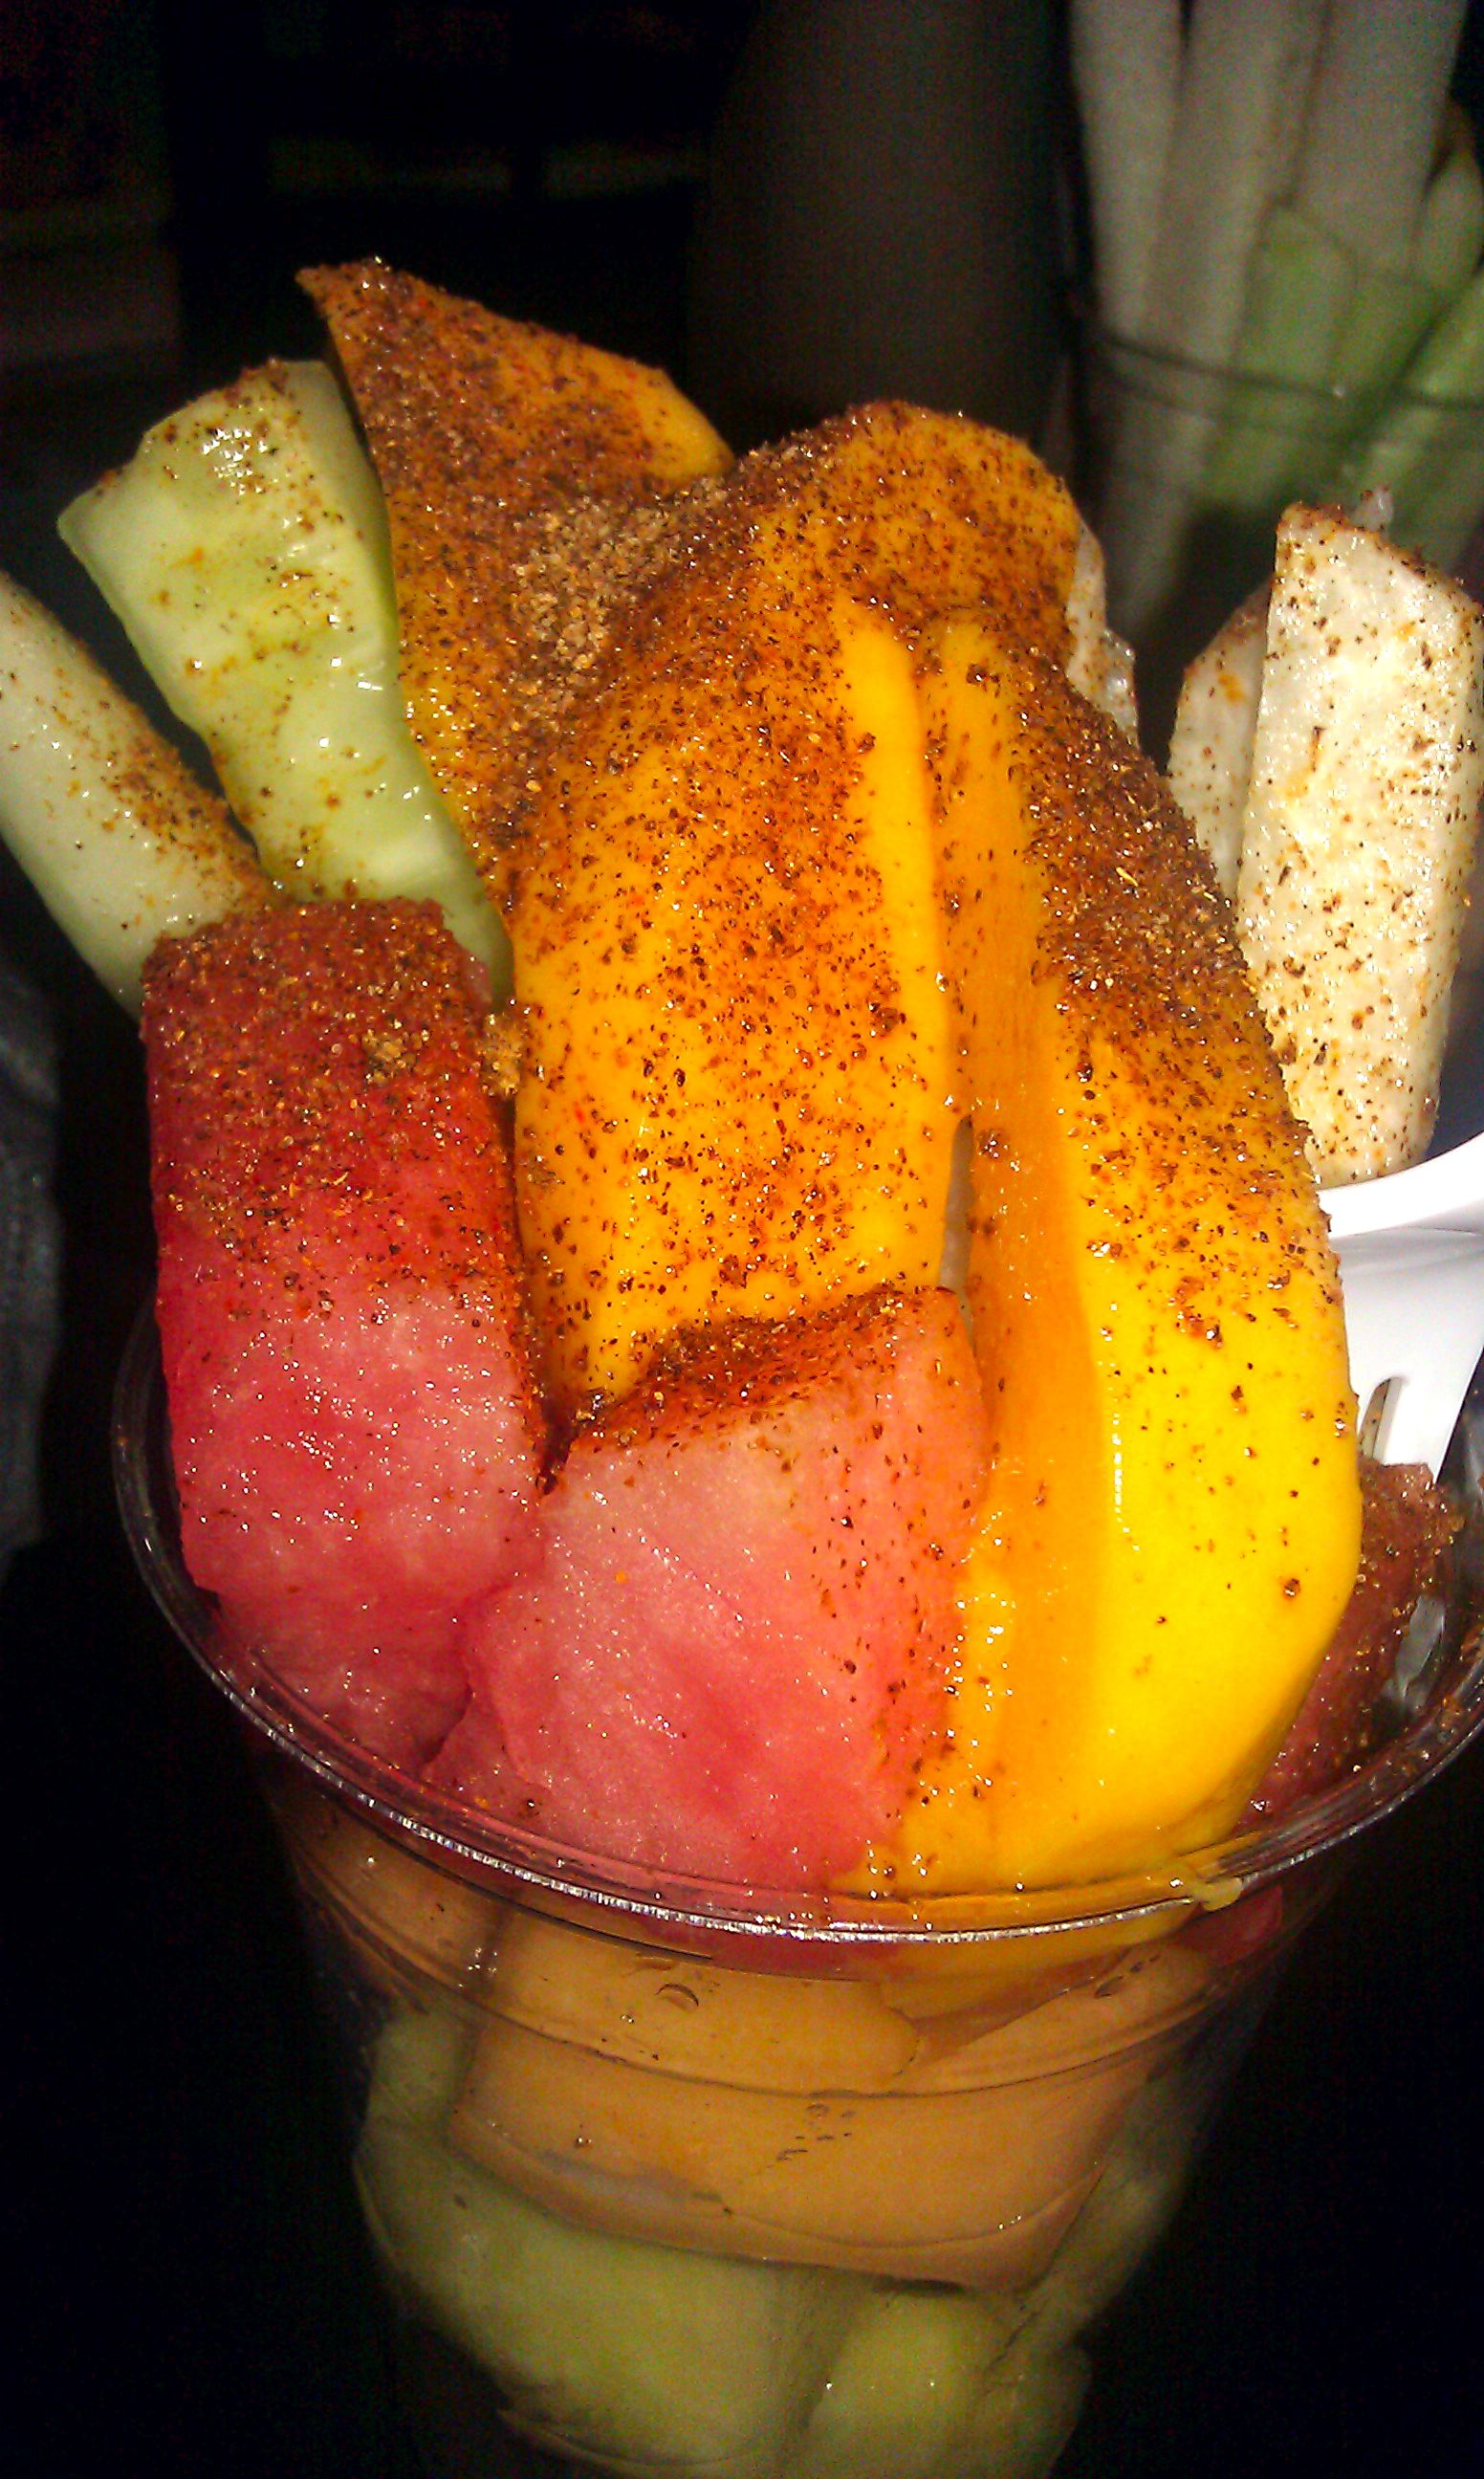 Fruta con chile y limon jicama sand a pepino y mango for Cocktail de fruit